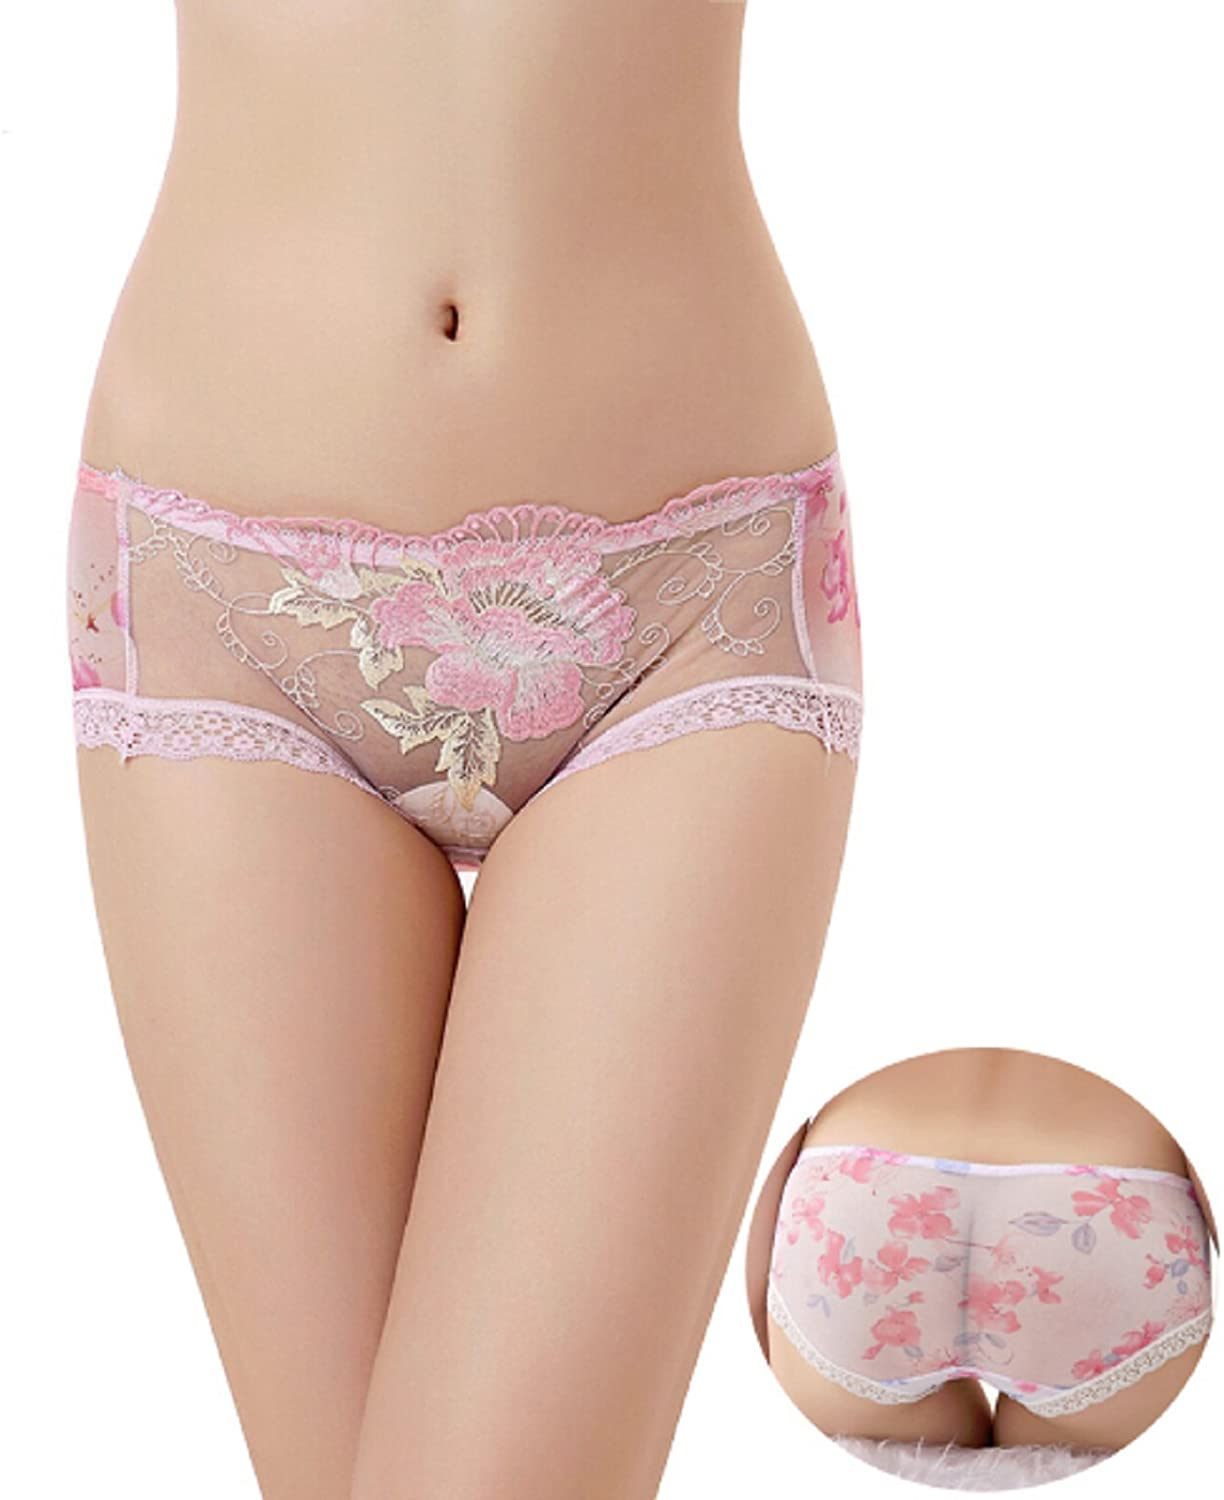 New! Sexy Hollow Out Women Panties Embroidered S-XL Lingerie Transparent Lace Printing Briefs Underwear for Girl